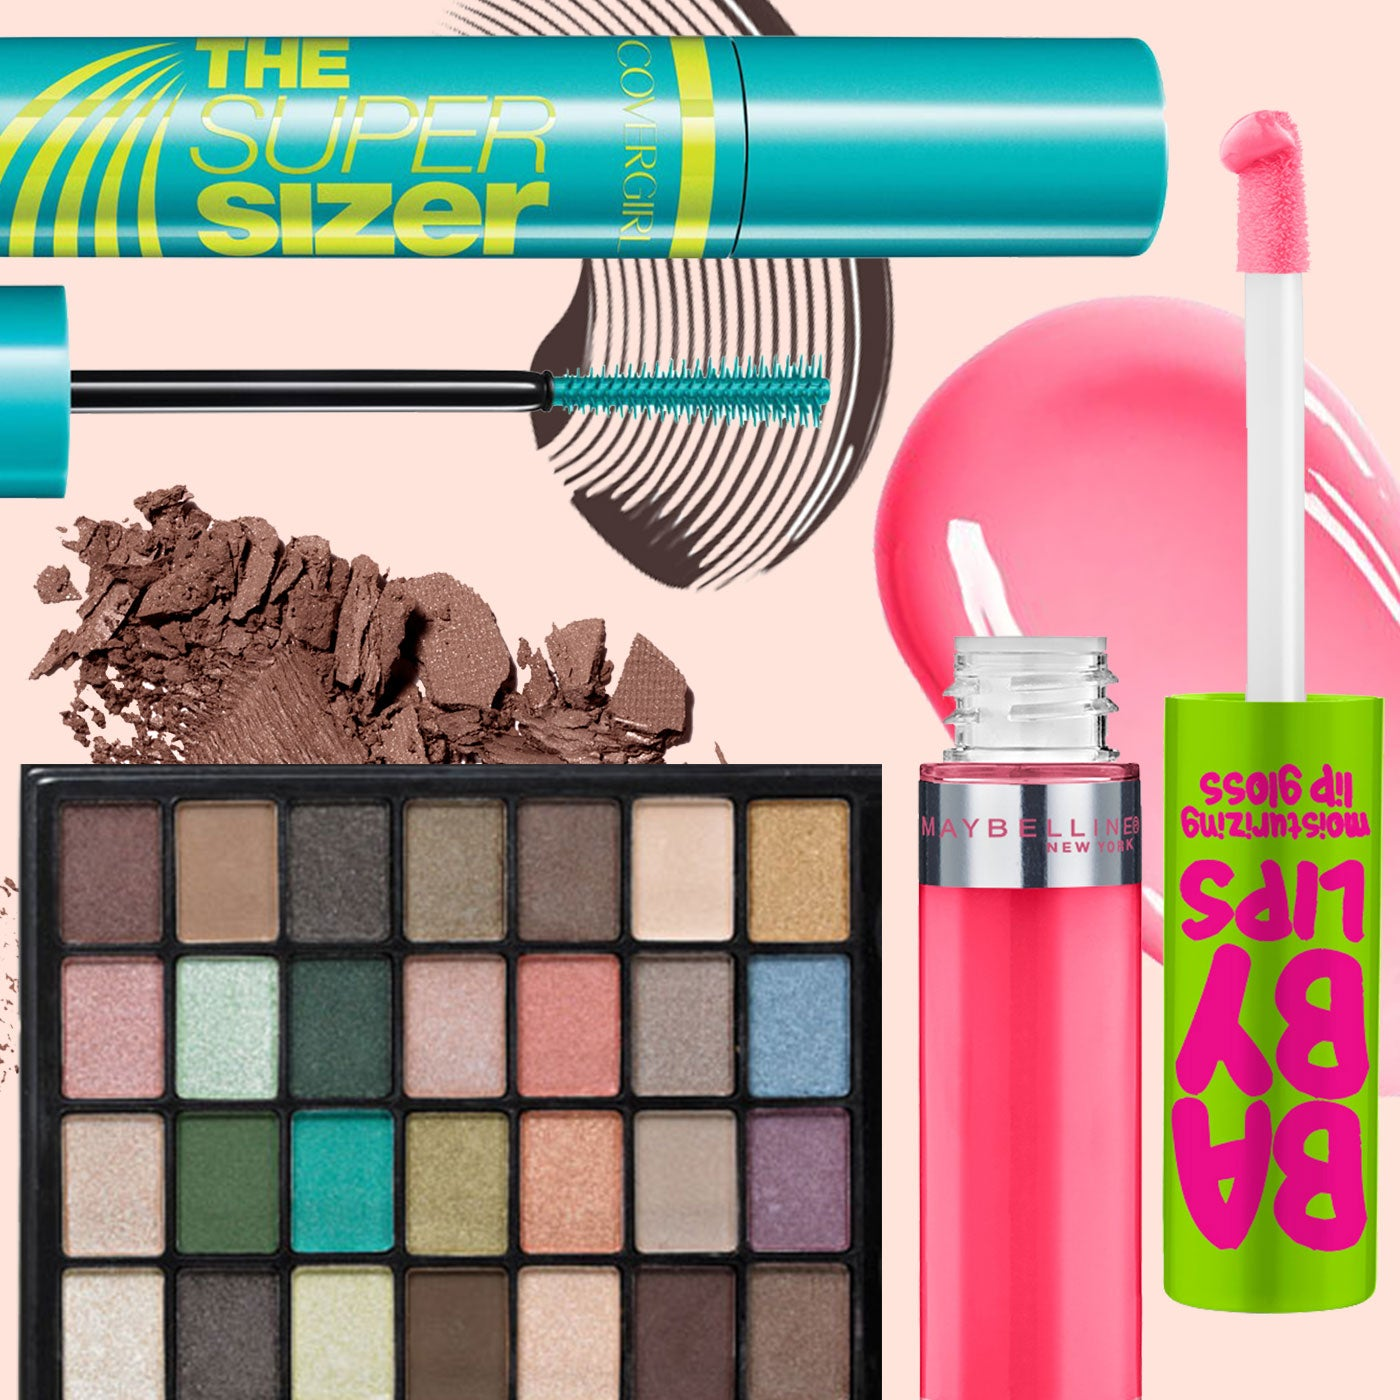 8 Beauty Bargains You Need to Make This School Year Your Prettiest Ever